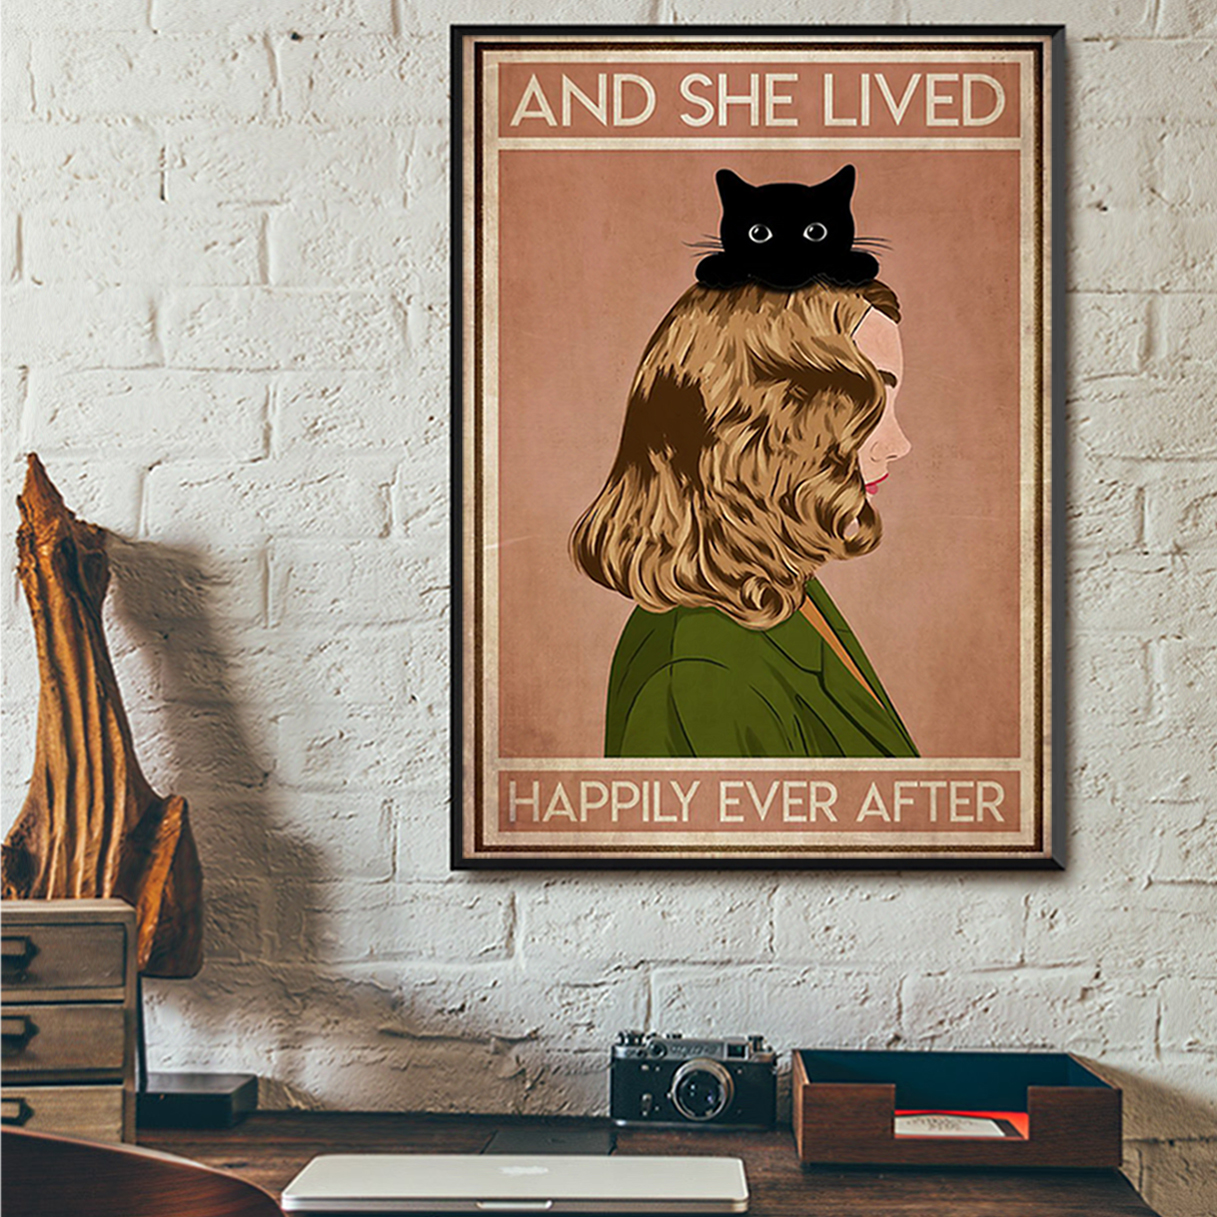 Blonde girl cat and she lived happily ever after poster A3